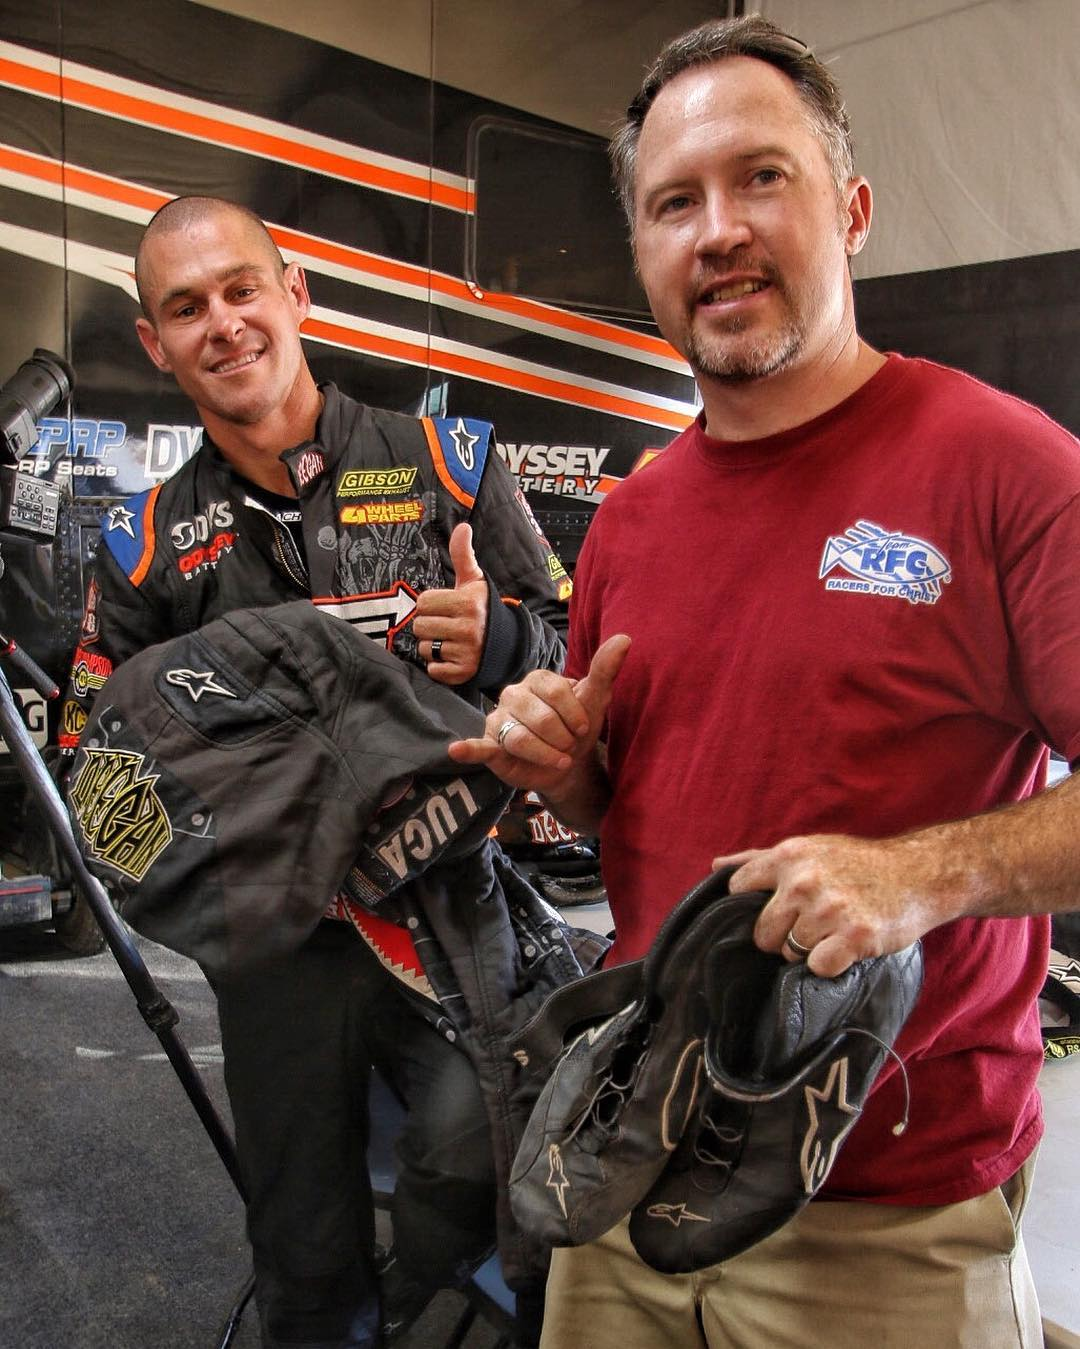 My friends at @3n1motorsports will be raffling off some of my driving suits tomorrow at 6 pm at Leducs pit. You can buy your tickets at the track or on the link in his bio. Don't have to be present to win. Proceeds go to a good cause. #teamrfc #rfc...